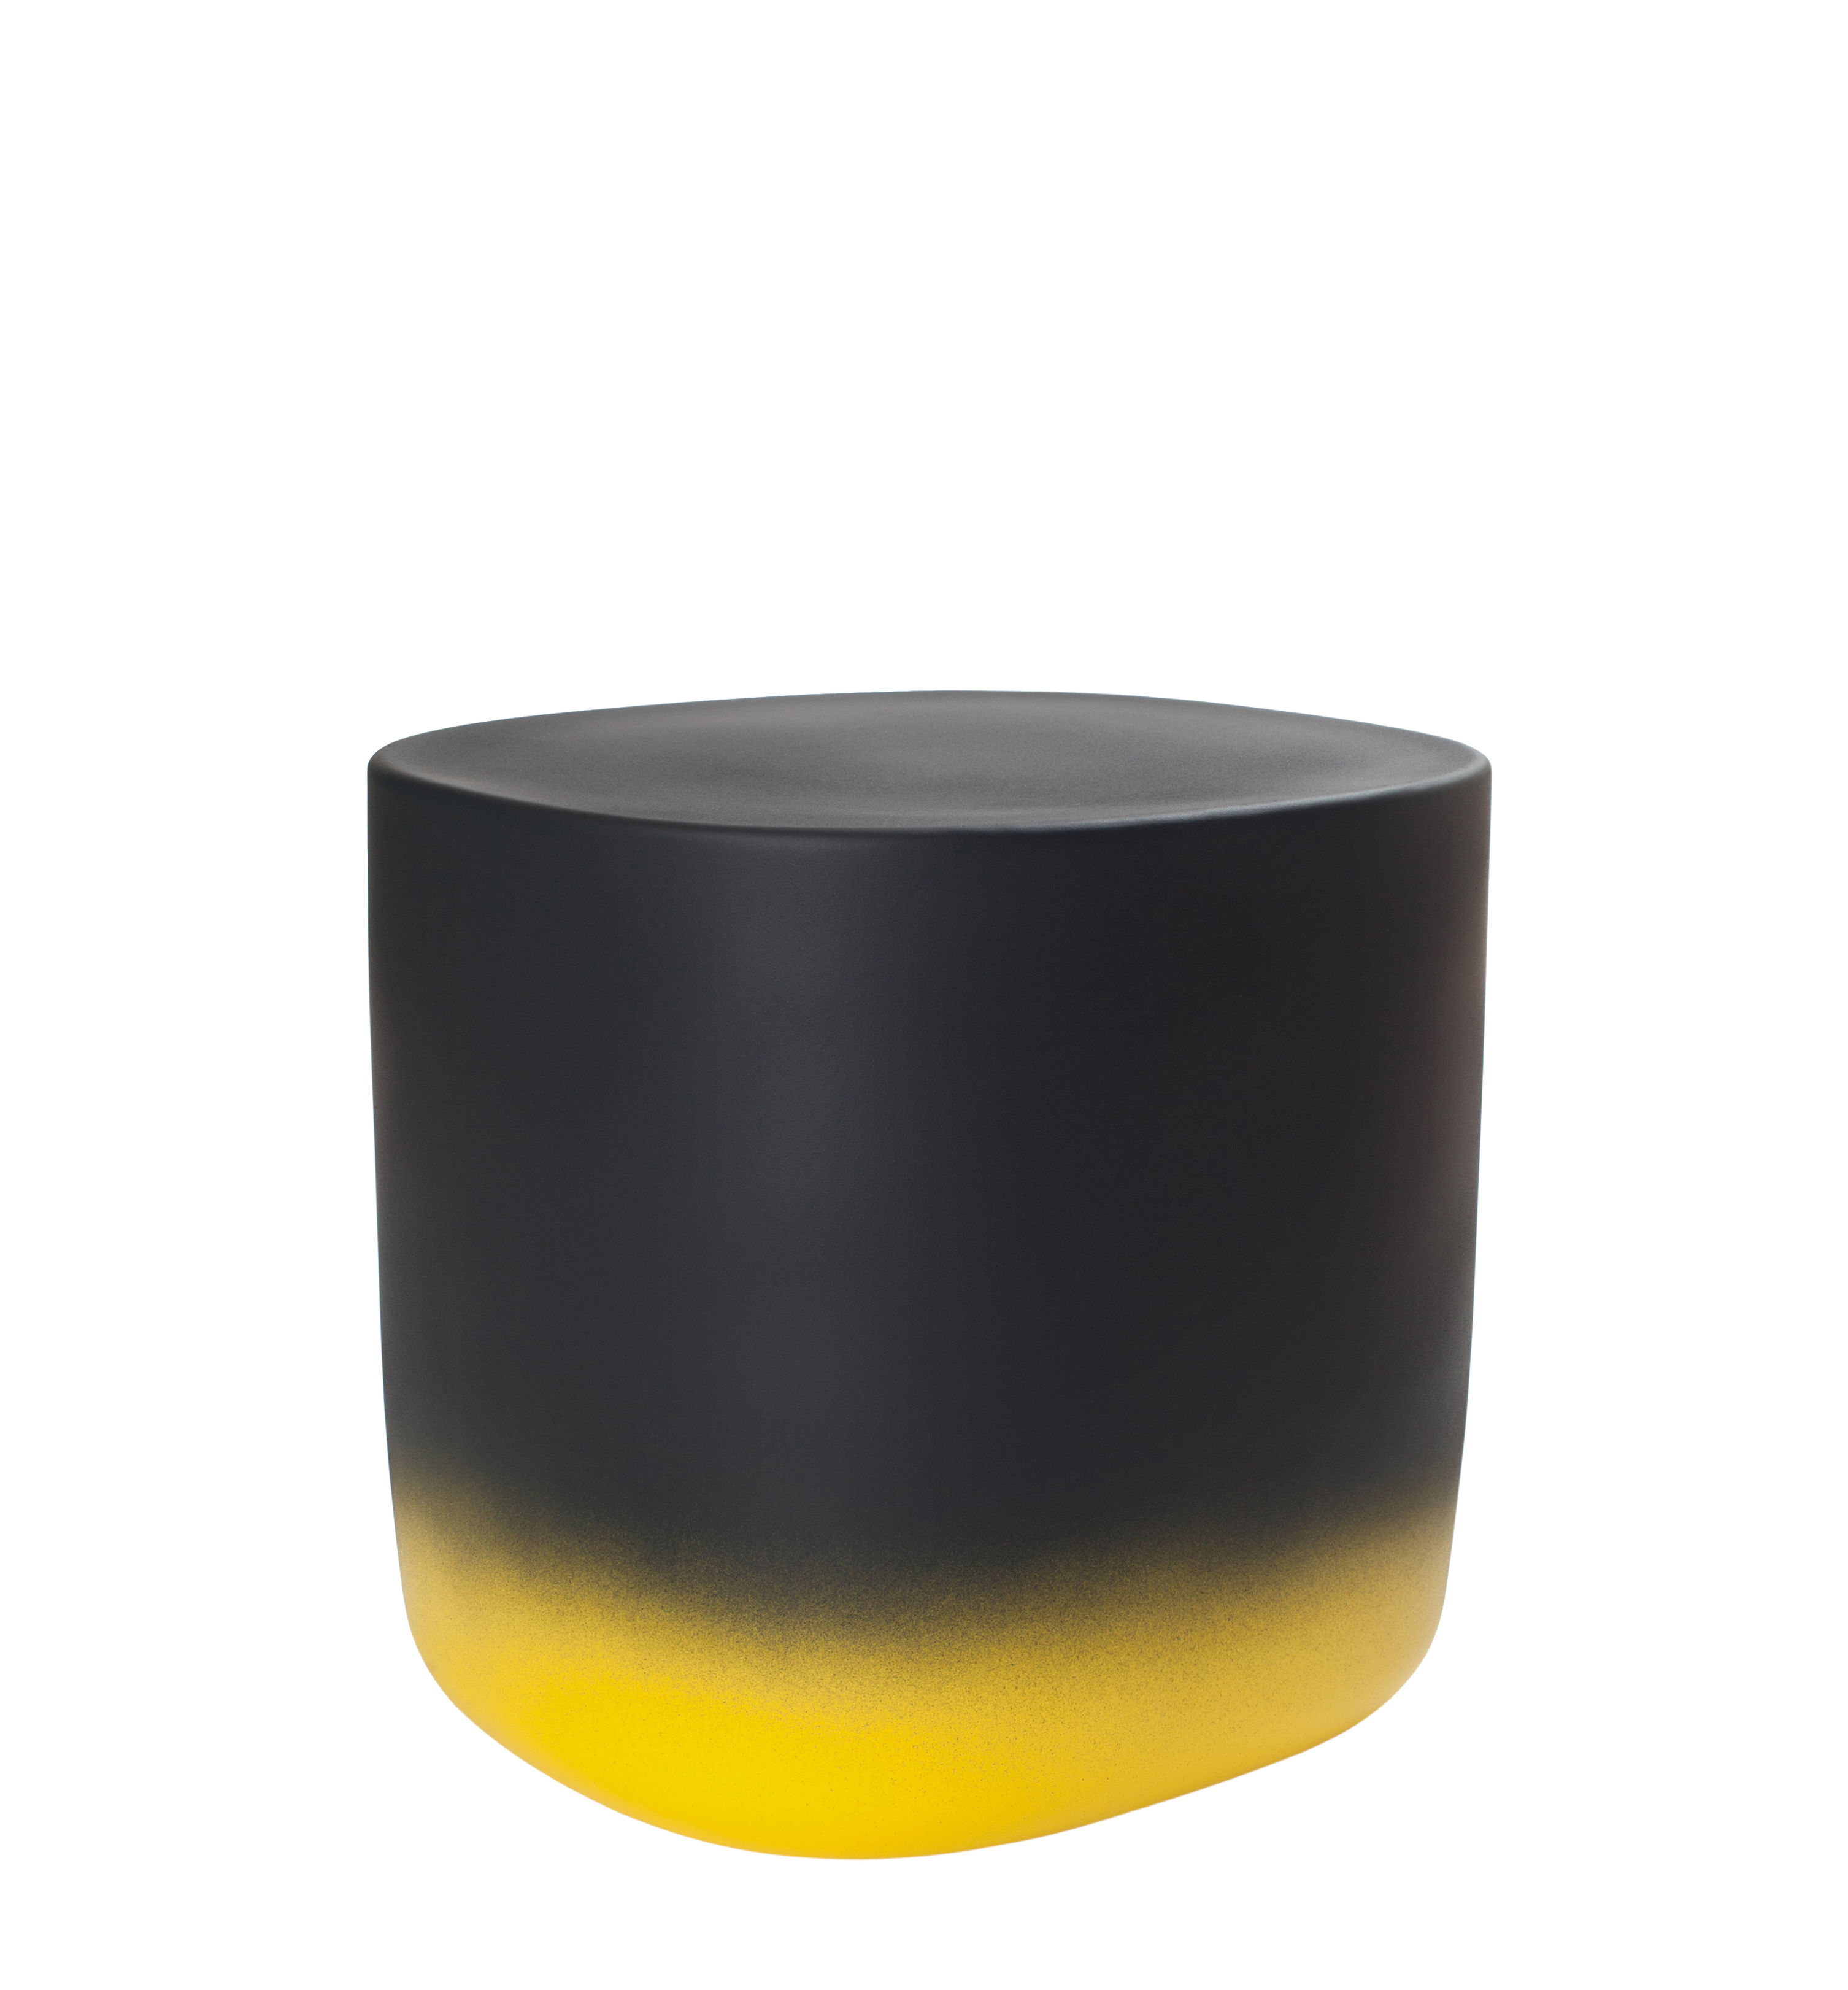 Furniture - Coffee Tables - Touch Medium End table - / L 37 x H 34 cm - Ceramic by Moustache - Yellow & black - Glazed ceramic